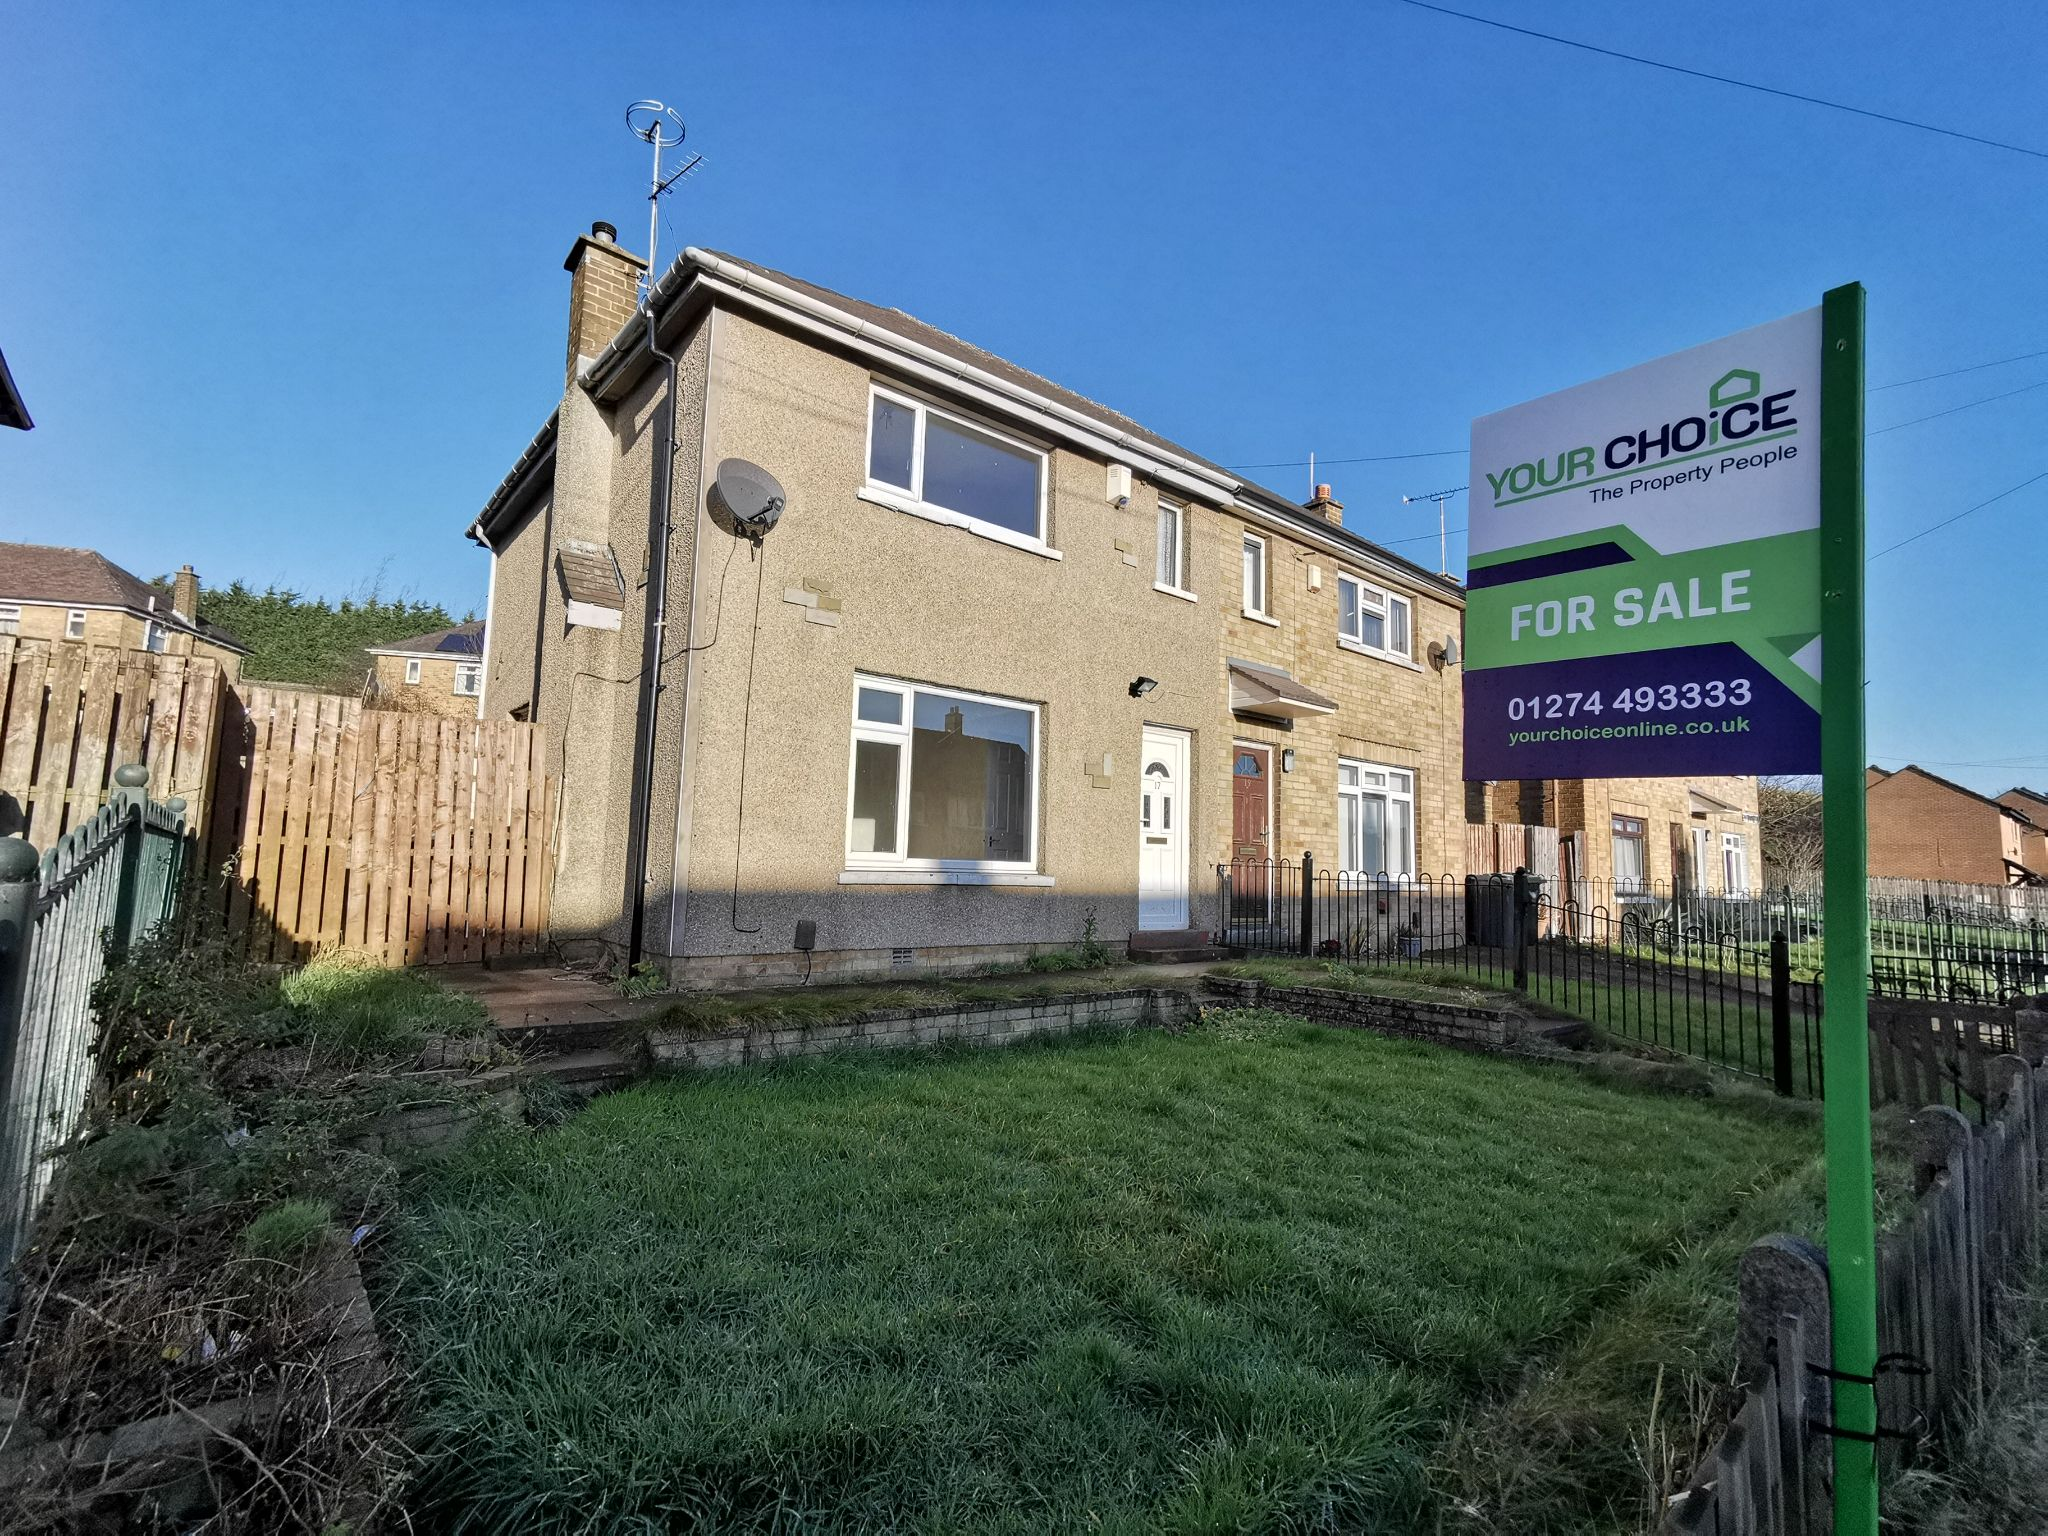 2 bedroom semi-detached house SSTC in Bradford - Photograph 1.